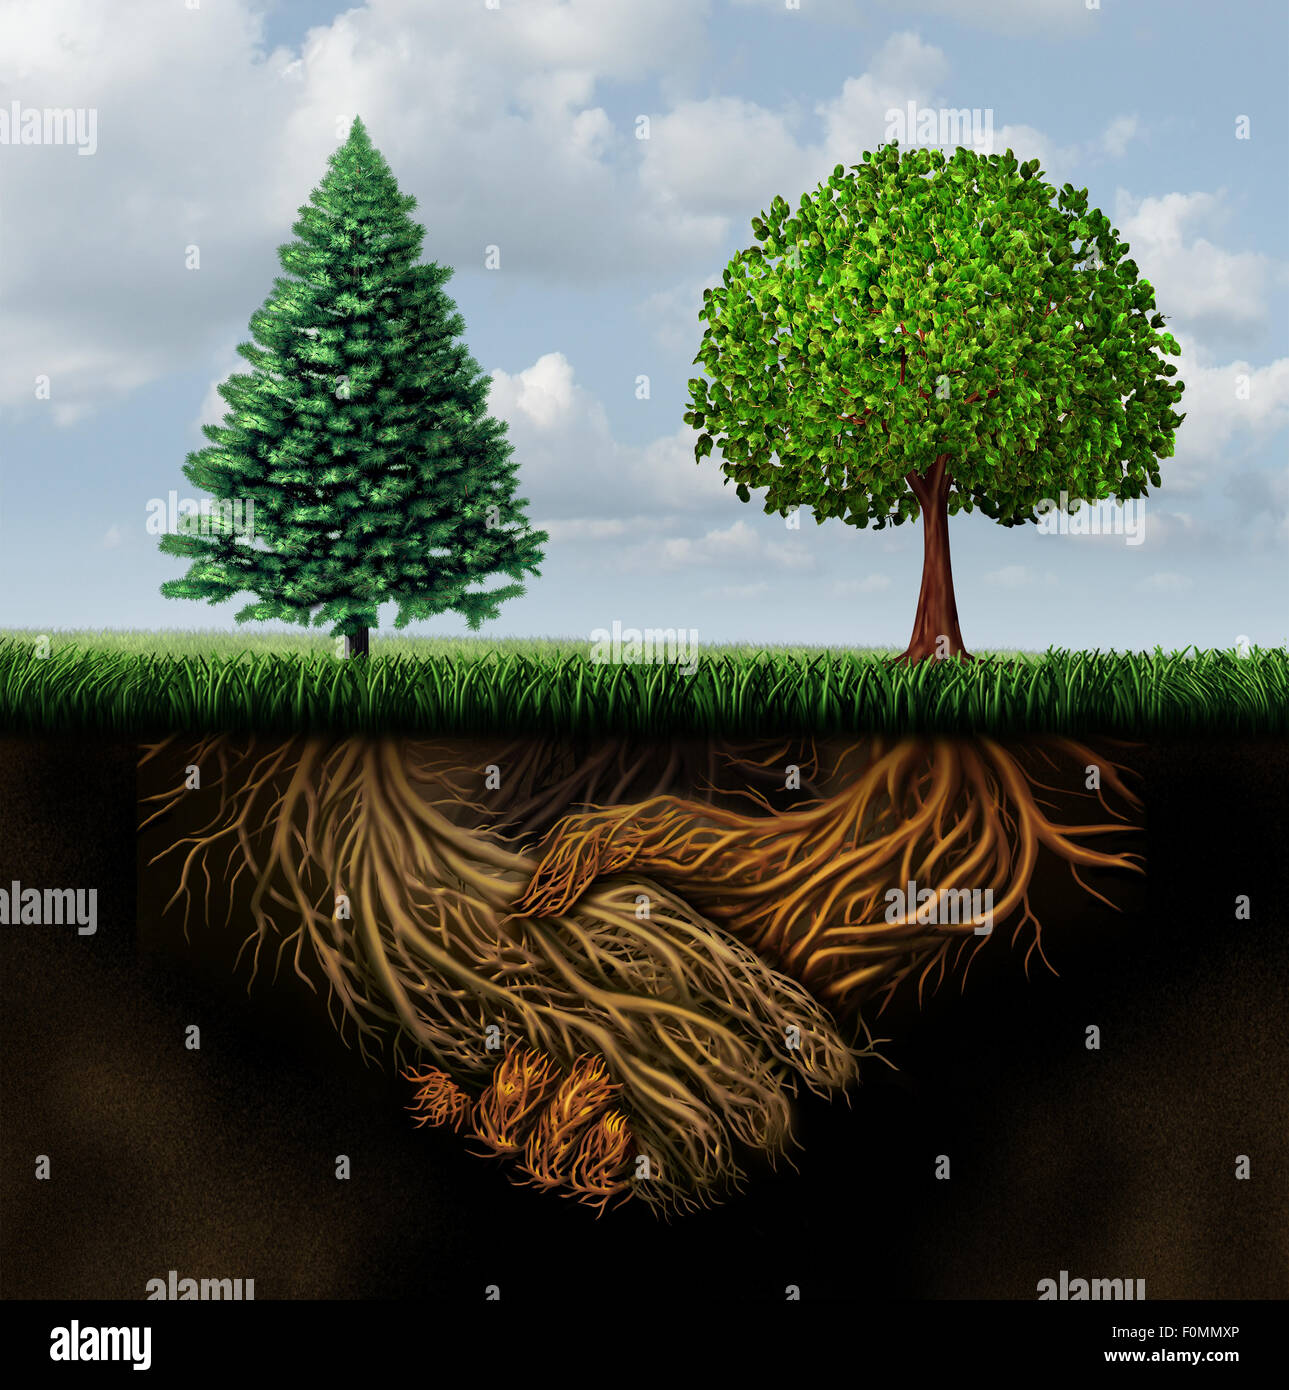 Global agreement shaking hands as two different trees from ...